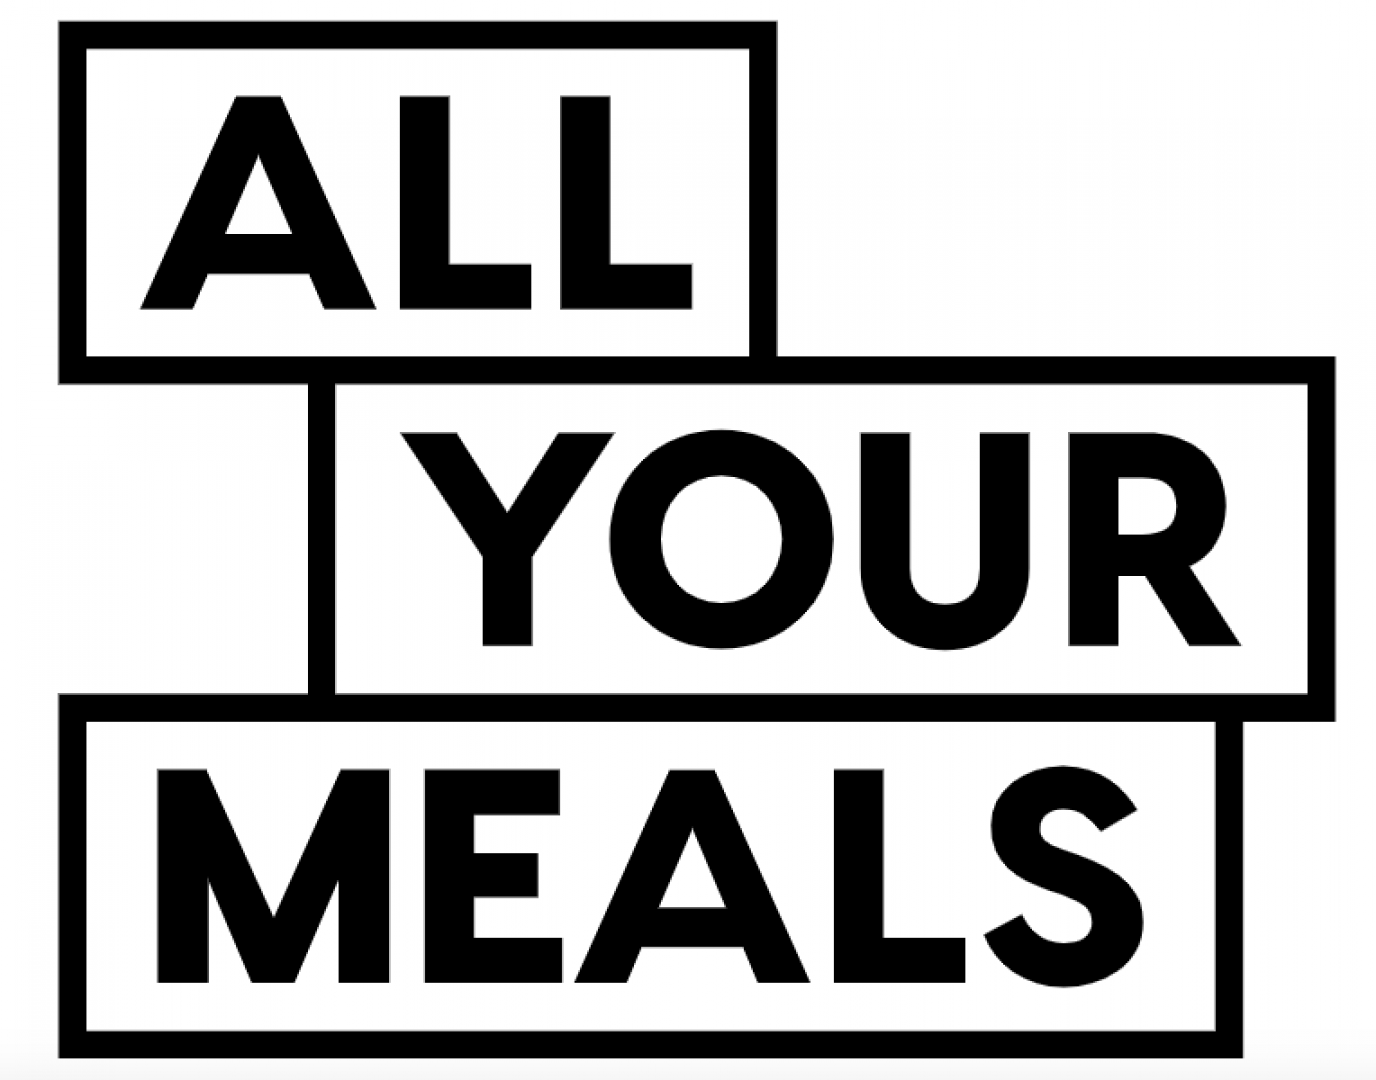 All Your Meals logo